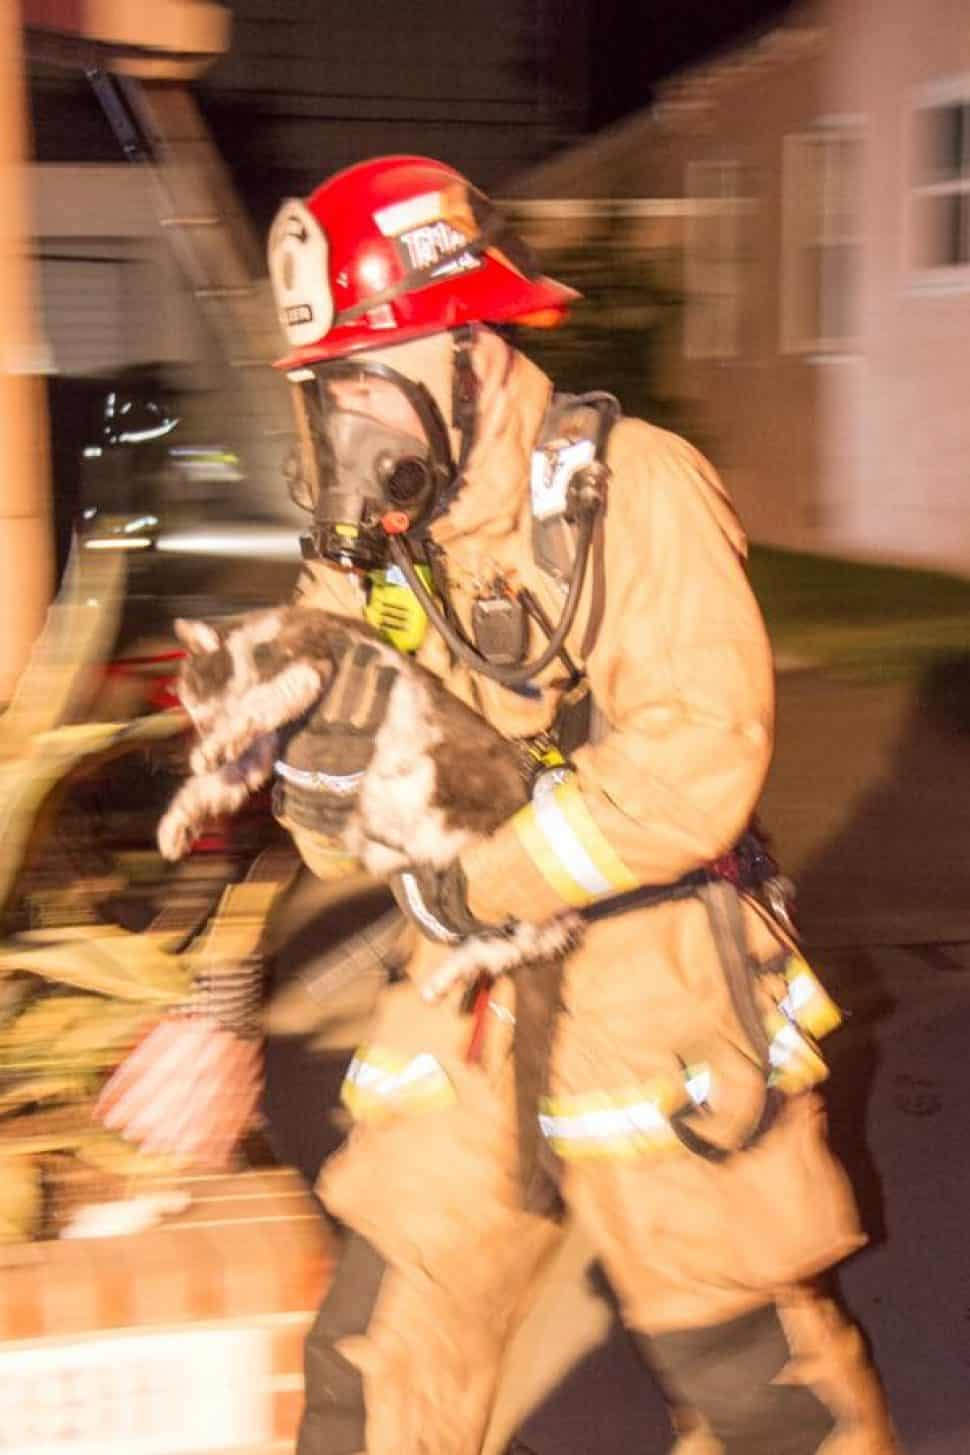 Firefighters rescued a cat from a blaze near the Traffic Circle in Long Beach on the morning of Tuesday, Sept. 11, 2018. Photo courtesy the Long Beach Fire Department.